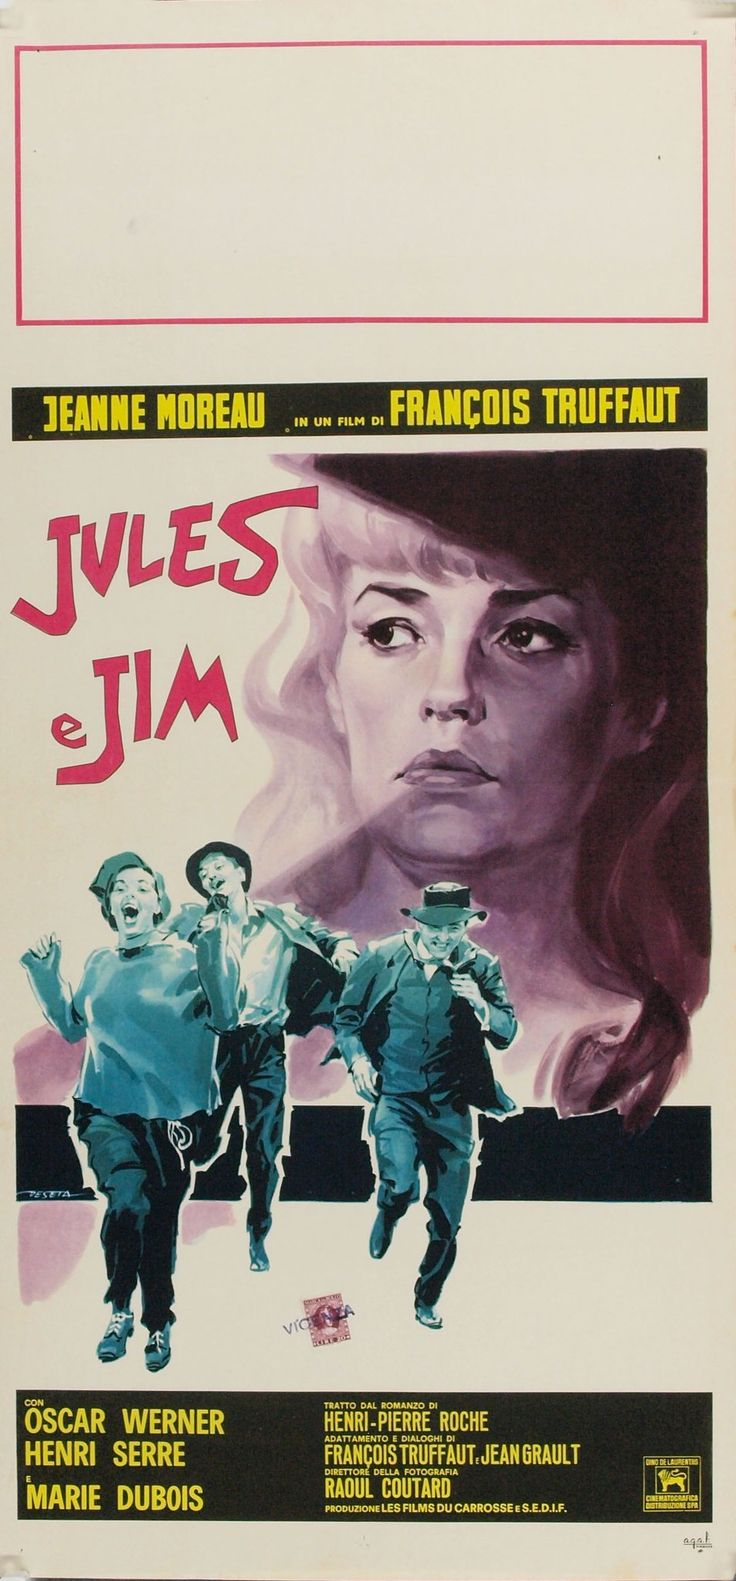 """via #IVPDA member Movie Art """"This is a smallish Italian poster called a locandina.  https://www.movieart.com/jules-et-jim-1962-8028/ For Jules And Jim, the #truffaut masterpiece.  Gift season is here!  MovieArt has film posters."""" #MoviePosters #VintagePosters"""